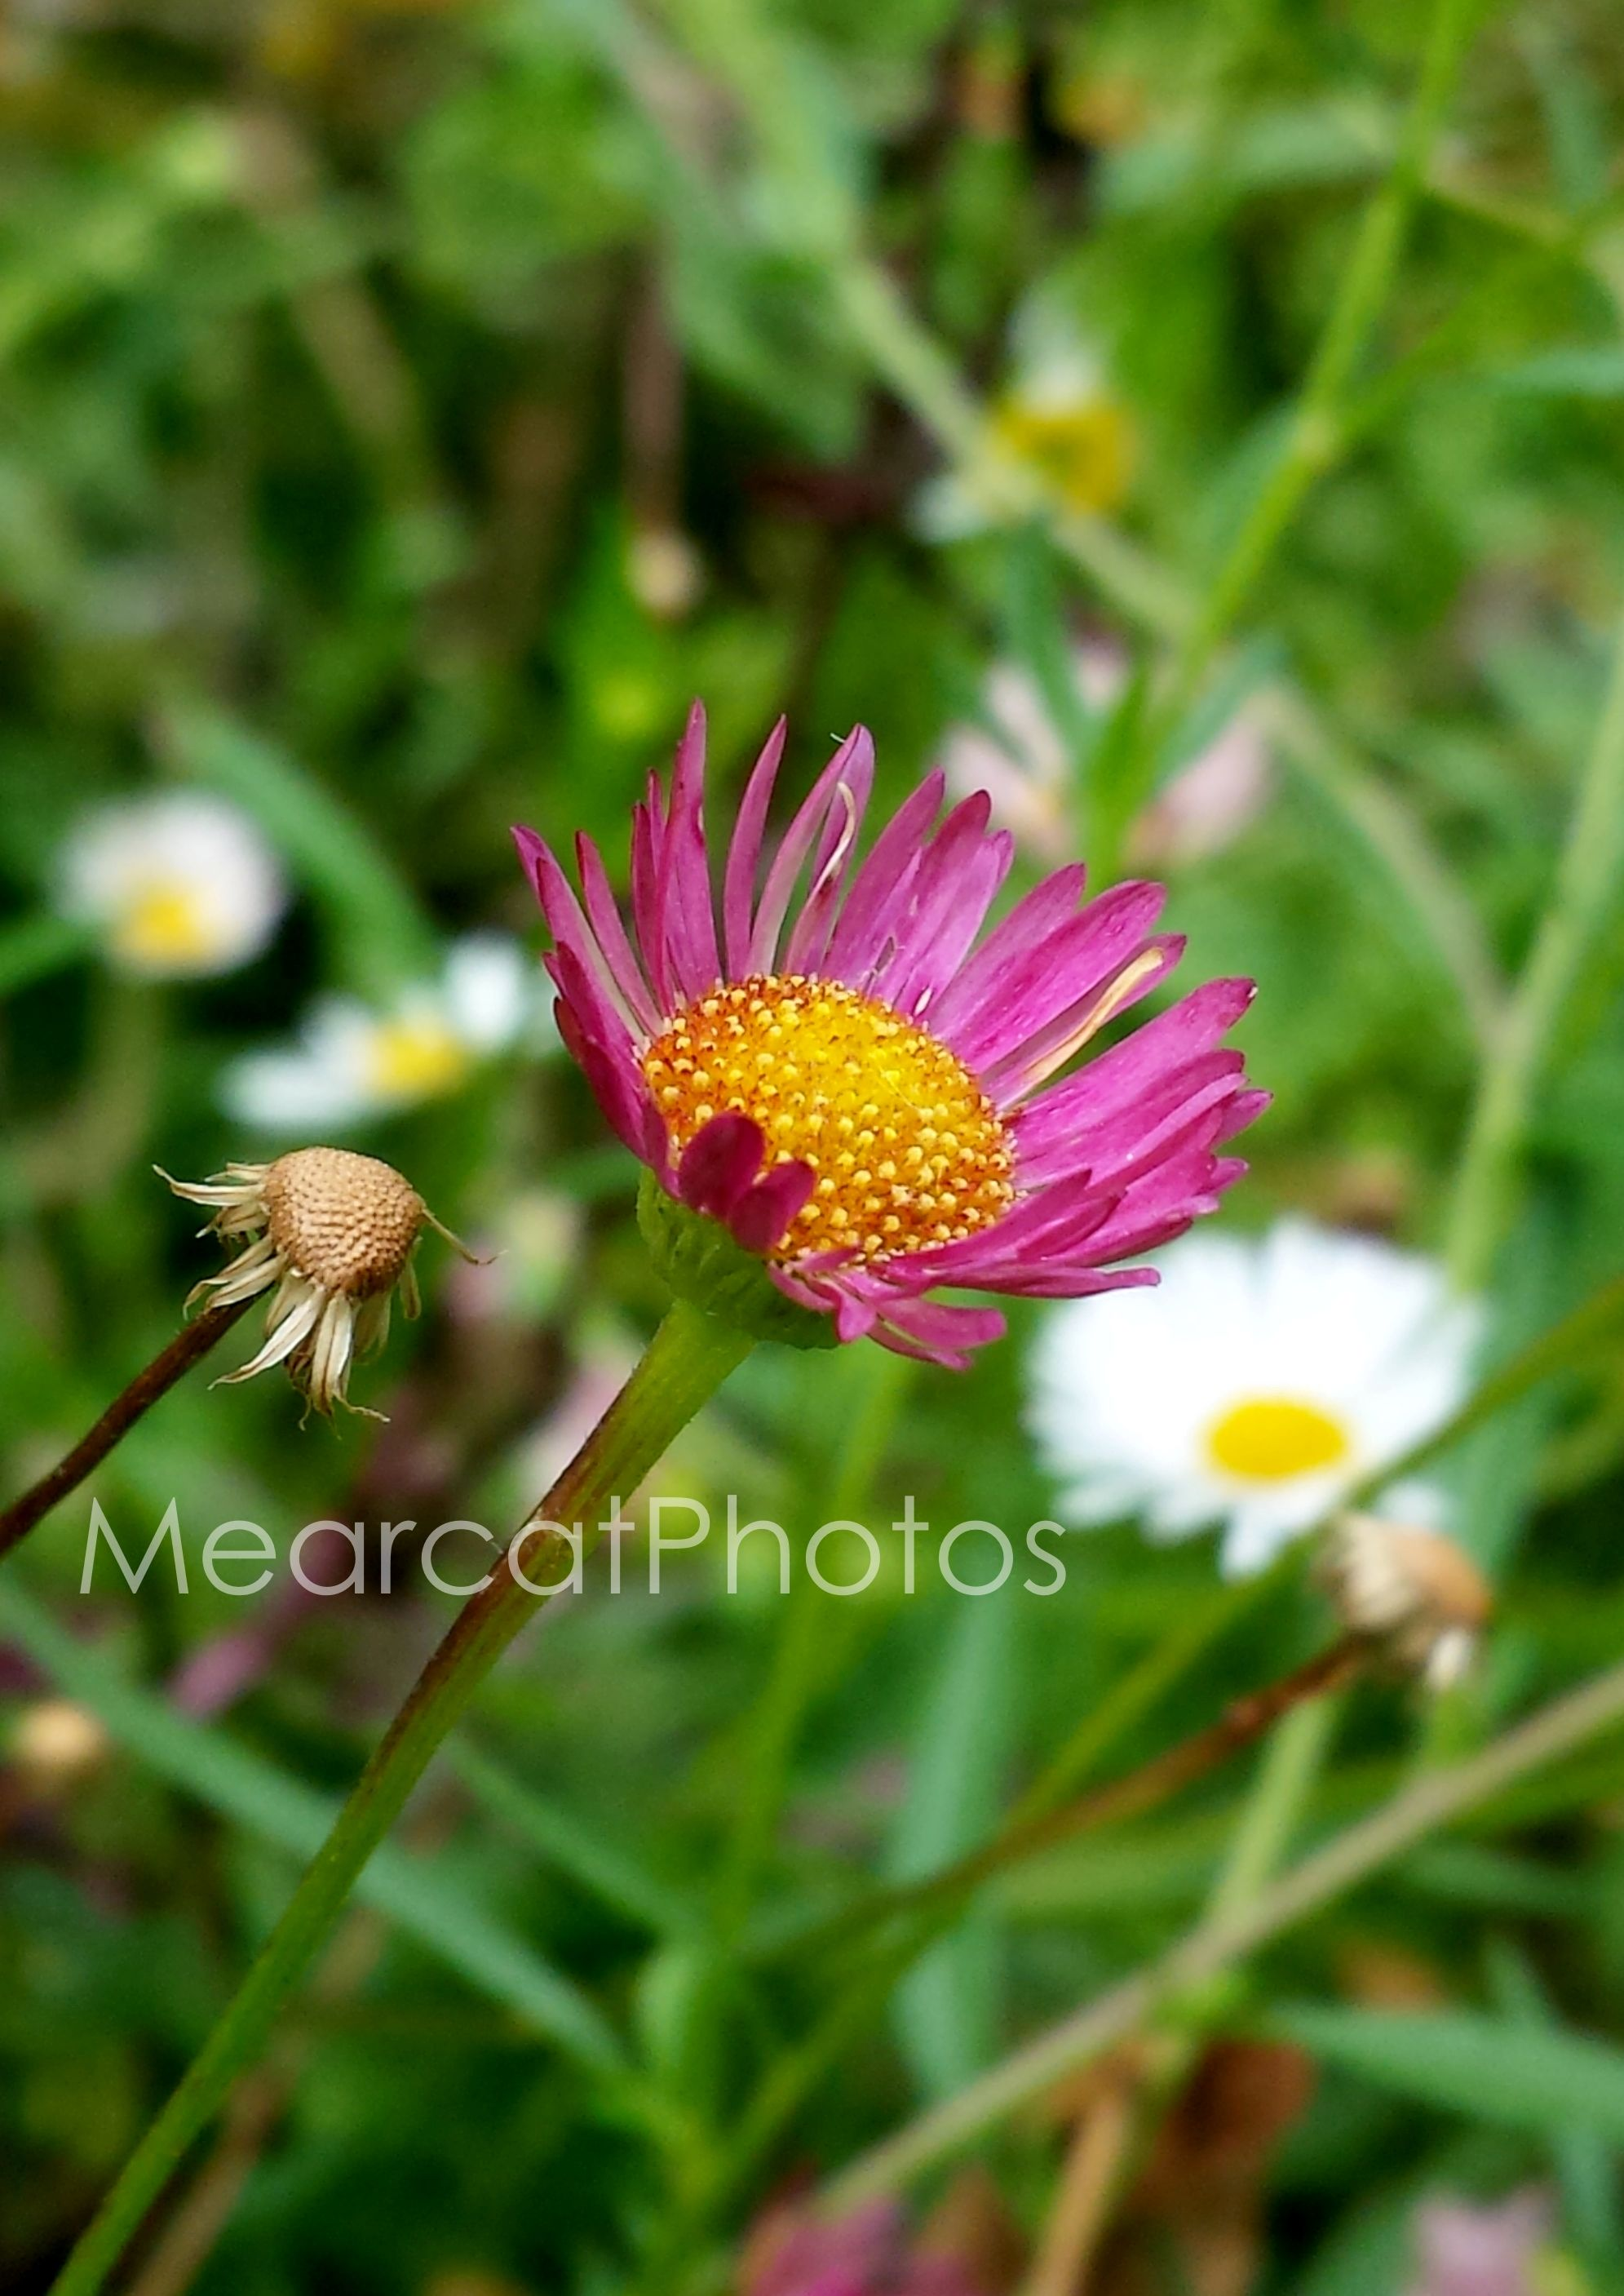 White pink purple shasta daisy flower photography daisies white pink purple shasta daisy flower photography izmirmasajfo